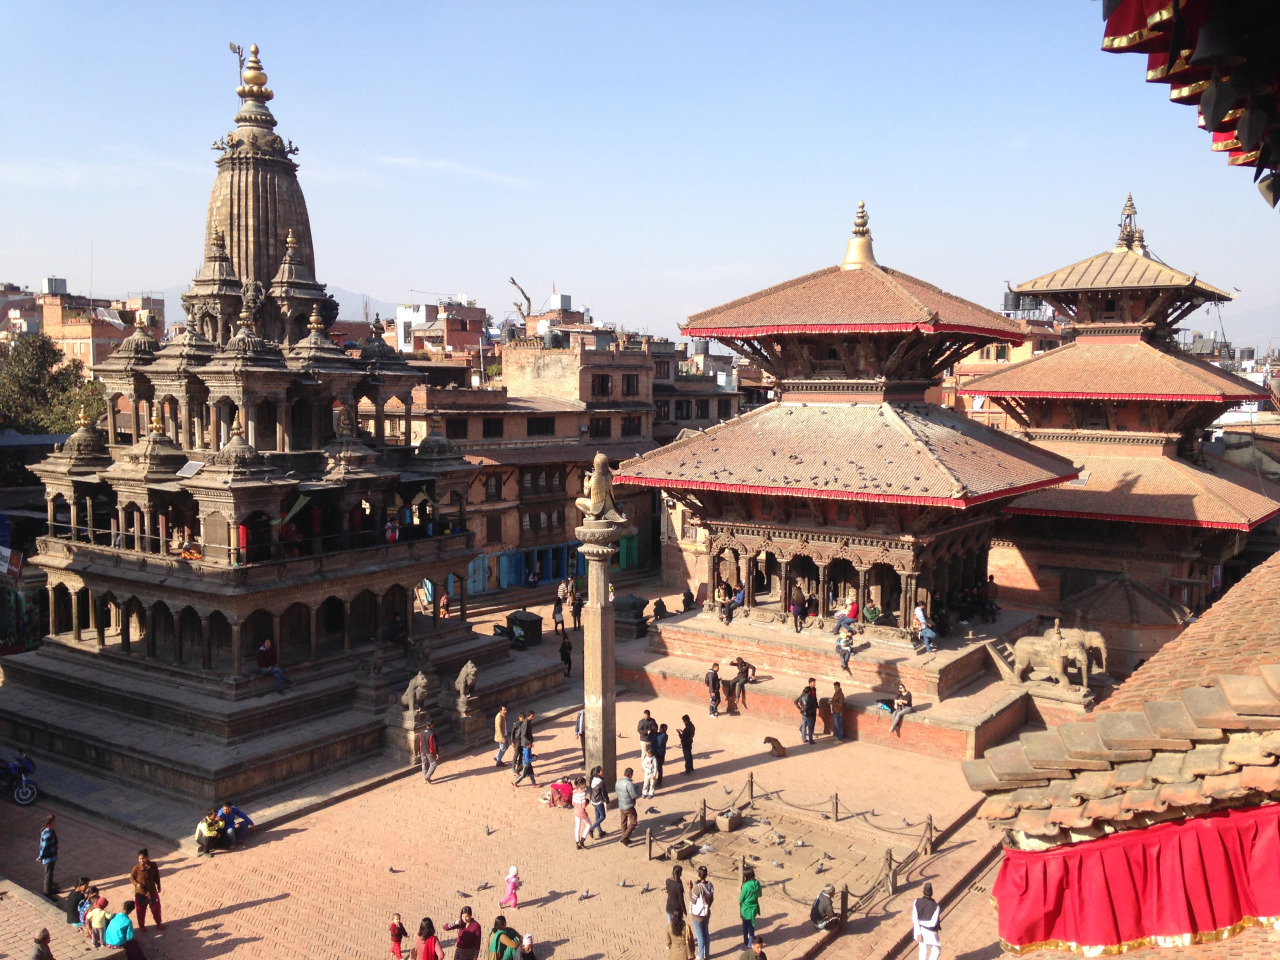 Kathman-DO! Why now is the time to visit Nepal